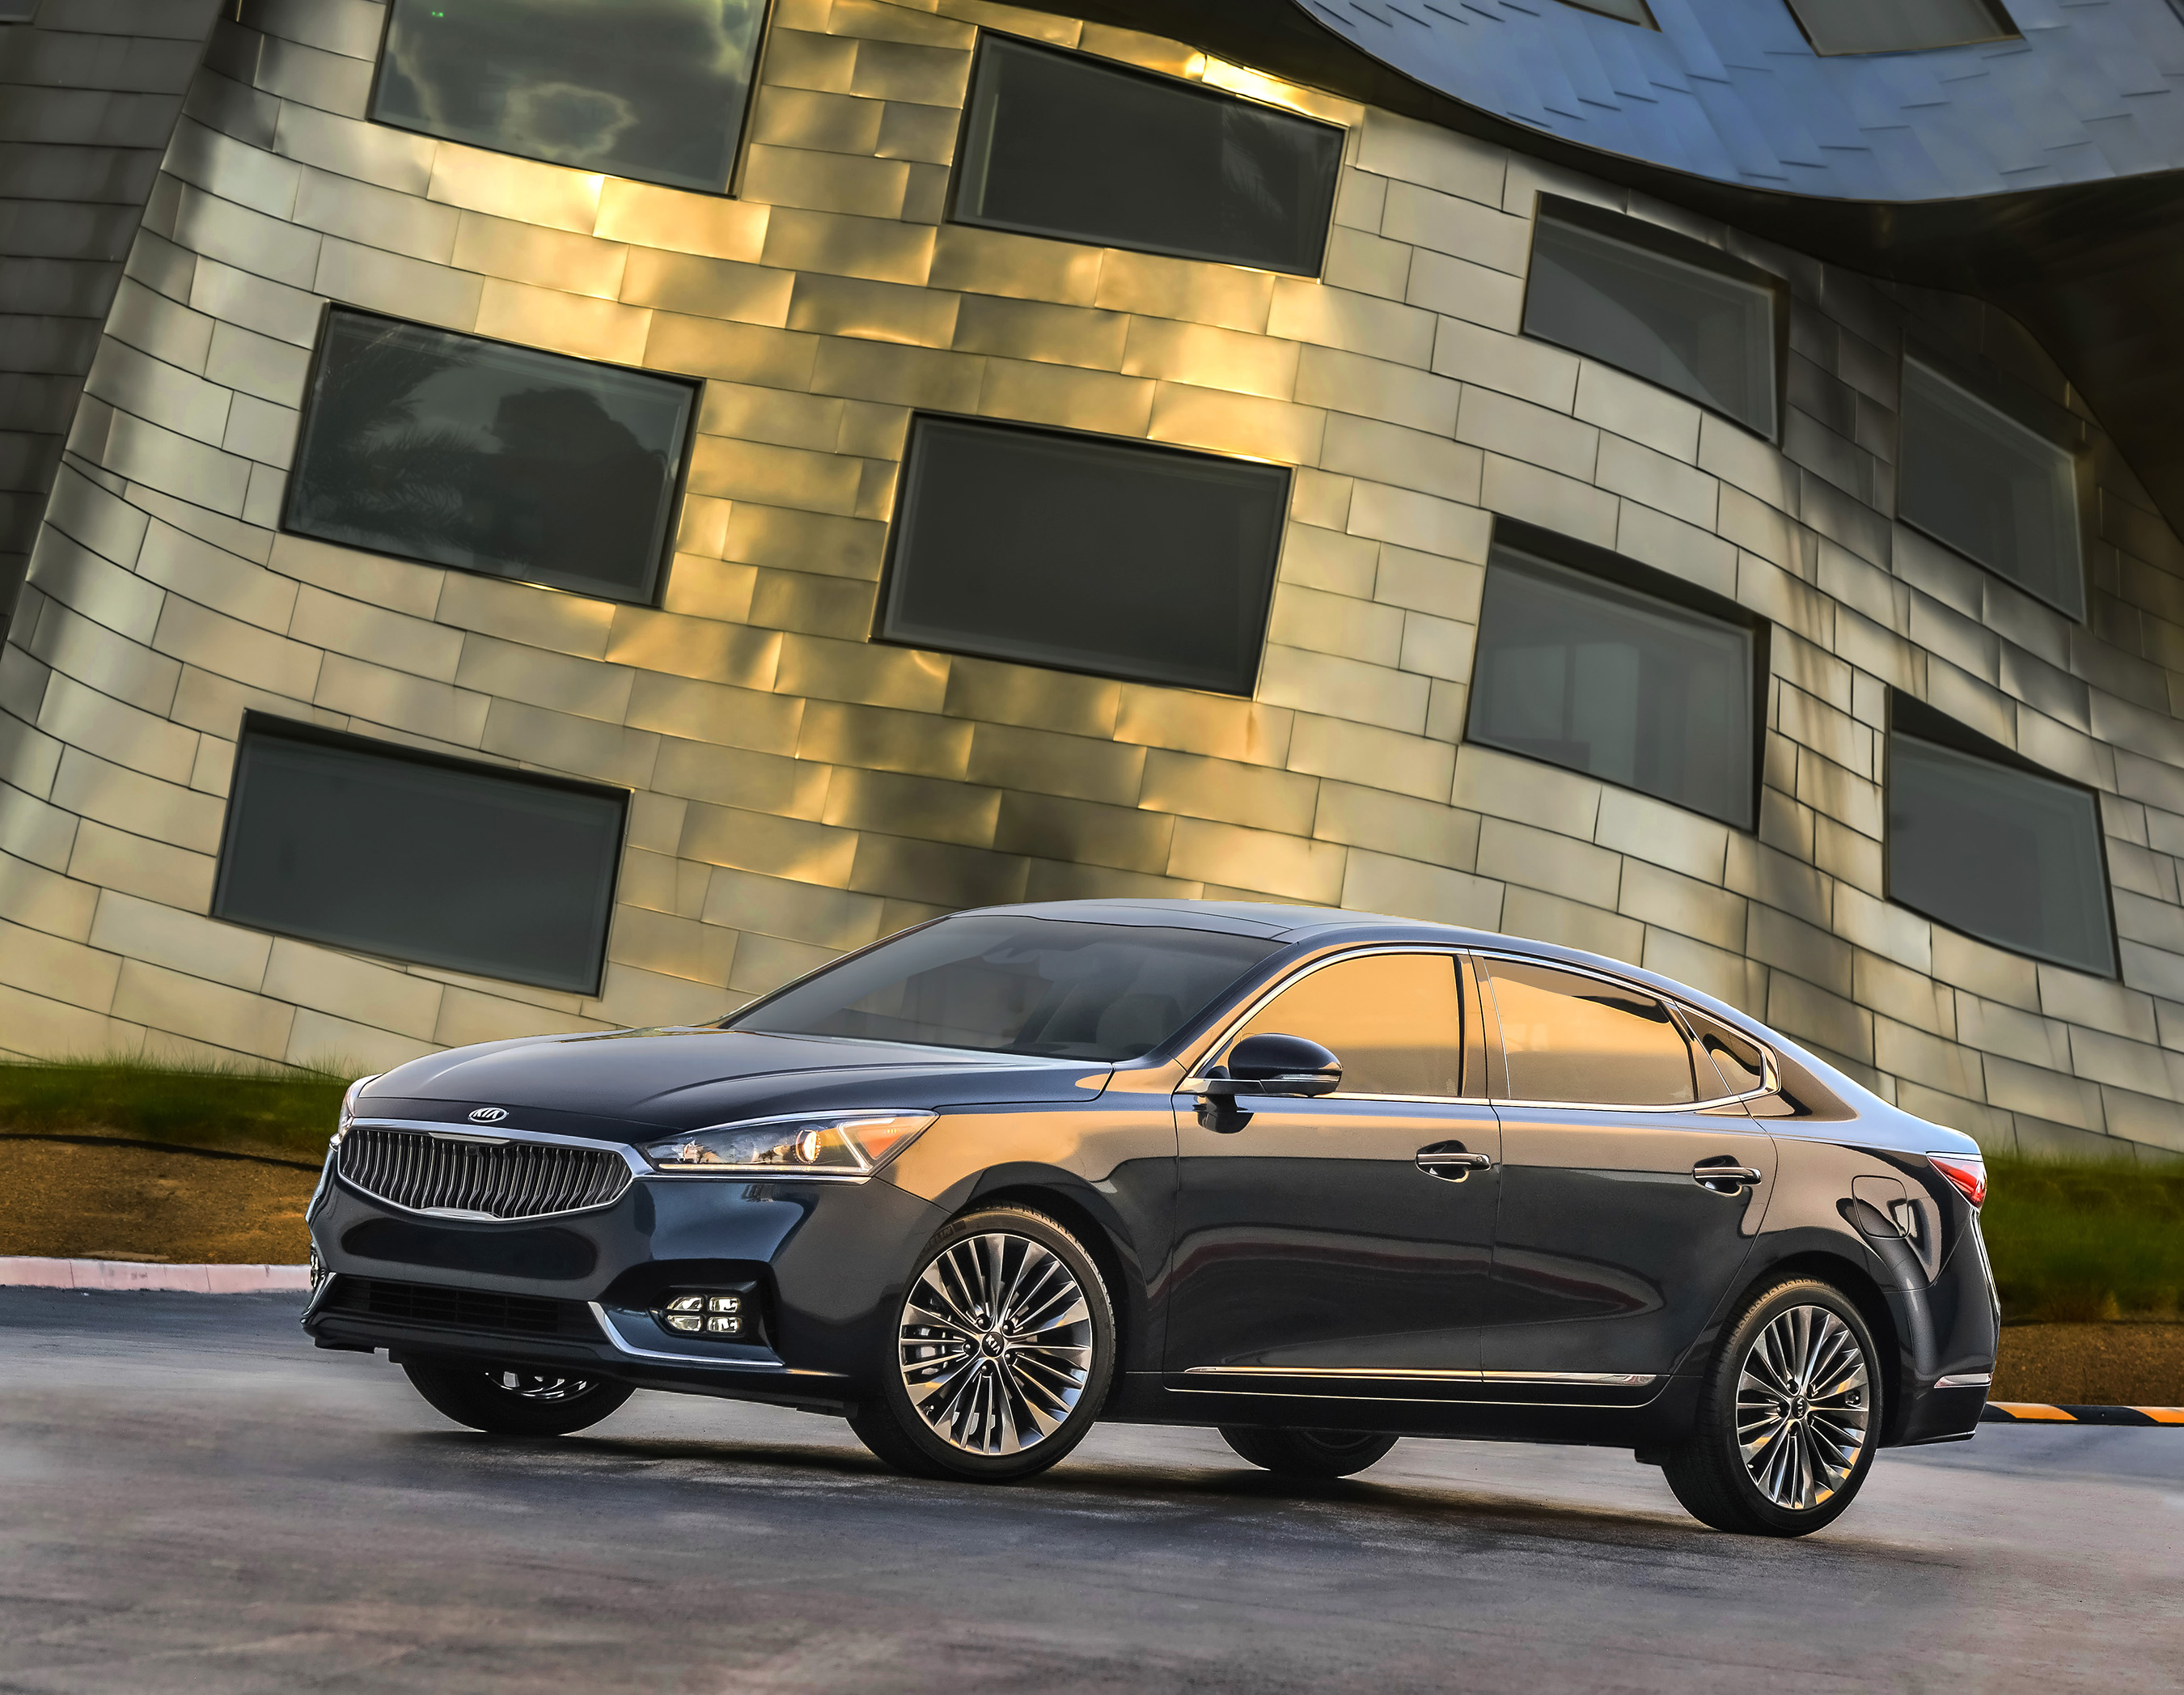 Designed at Kia's California design studio, the all-new 2017 Cadenza boasts luxury refinements with expressive styling, advanced technology, and refined powertrain.